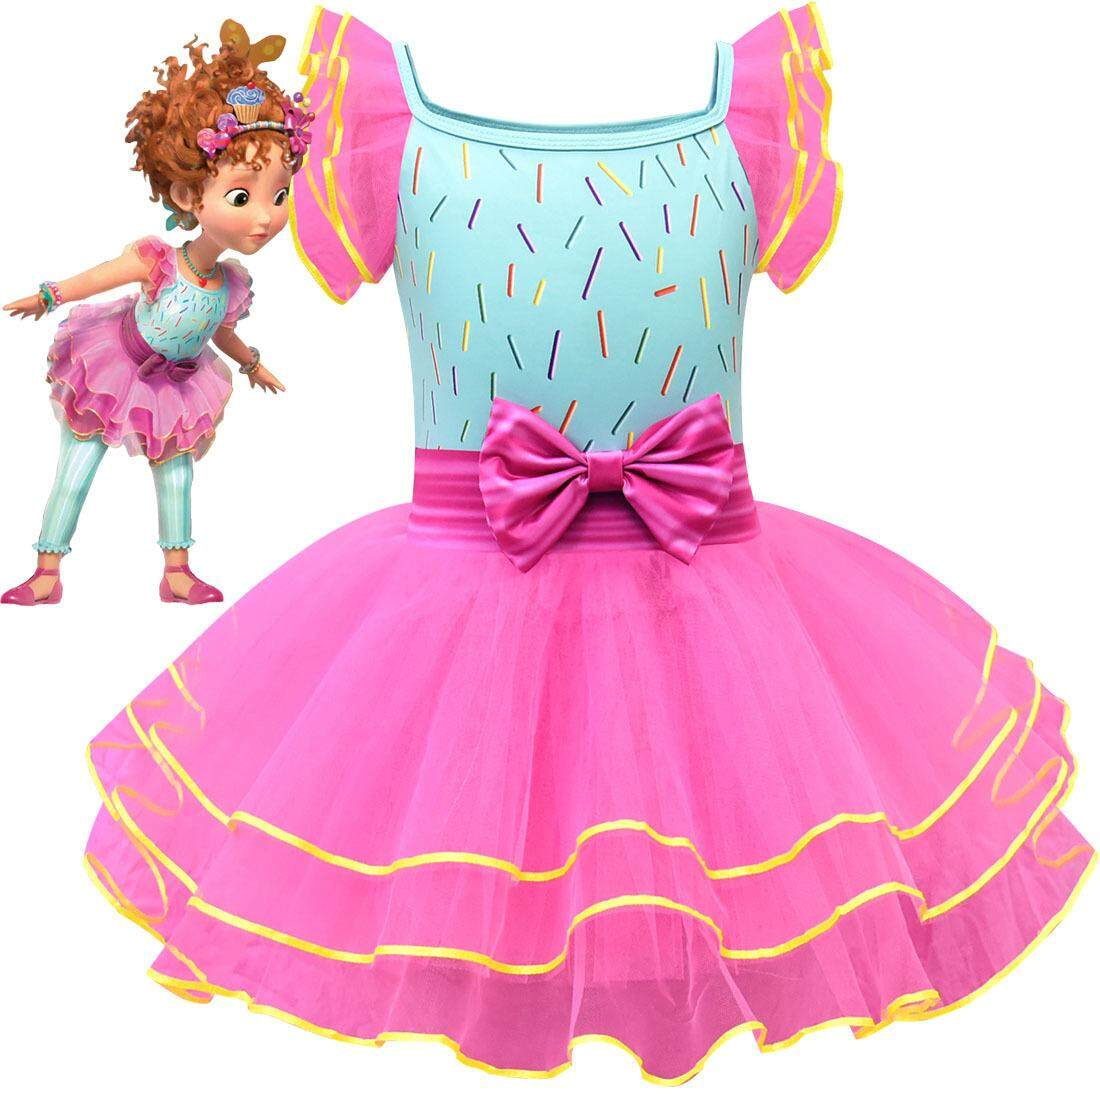 New Fancy Nancy Cosplay Cartoon Ruffle Dress Toddle Girls Ballet Performance